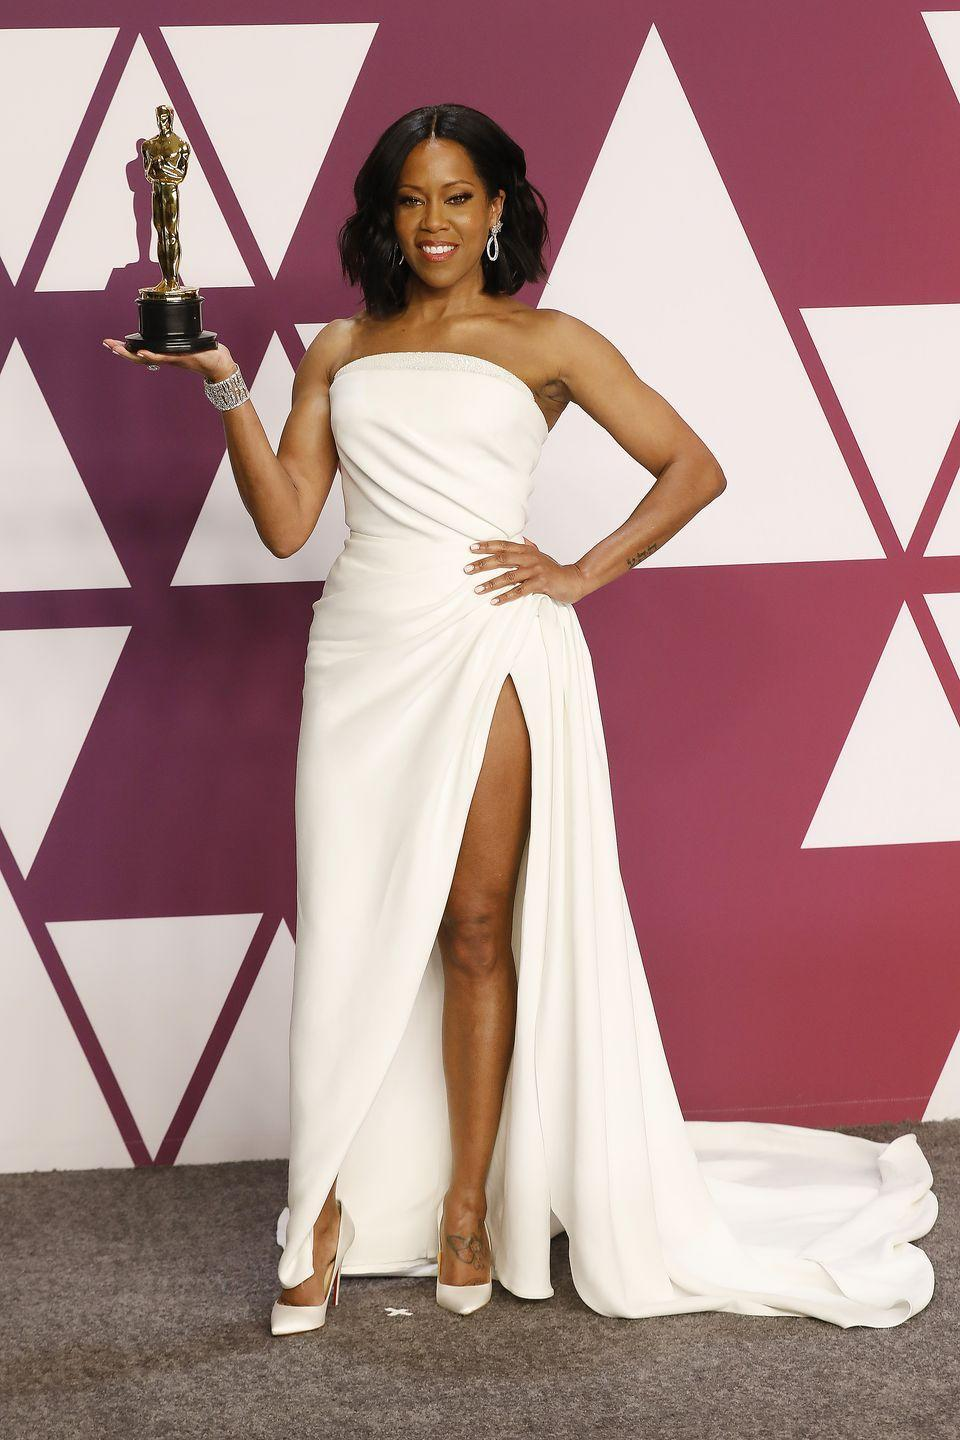 <p>Regina King poses with her first Oscar in an Oscar de la Renta dress. She won Best Supporting Actress for her performance in If Beale Street Could Talk. </p>